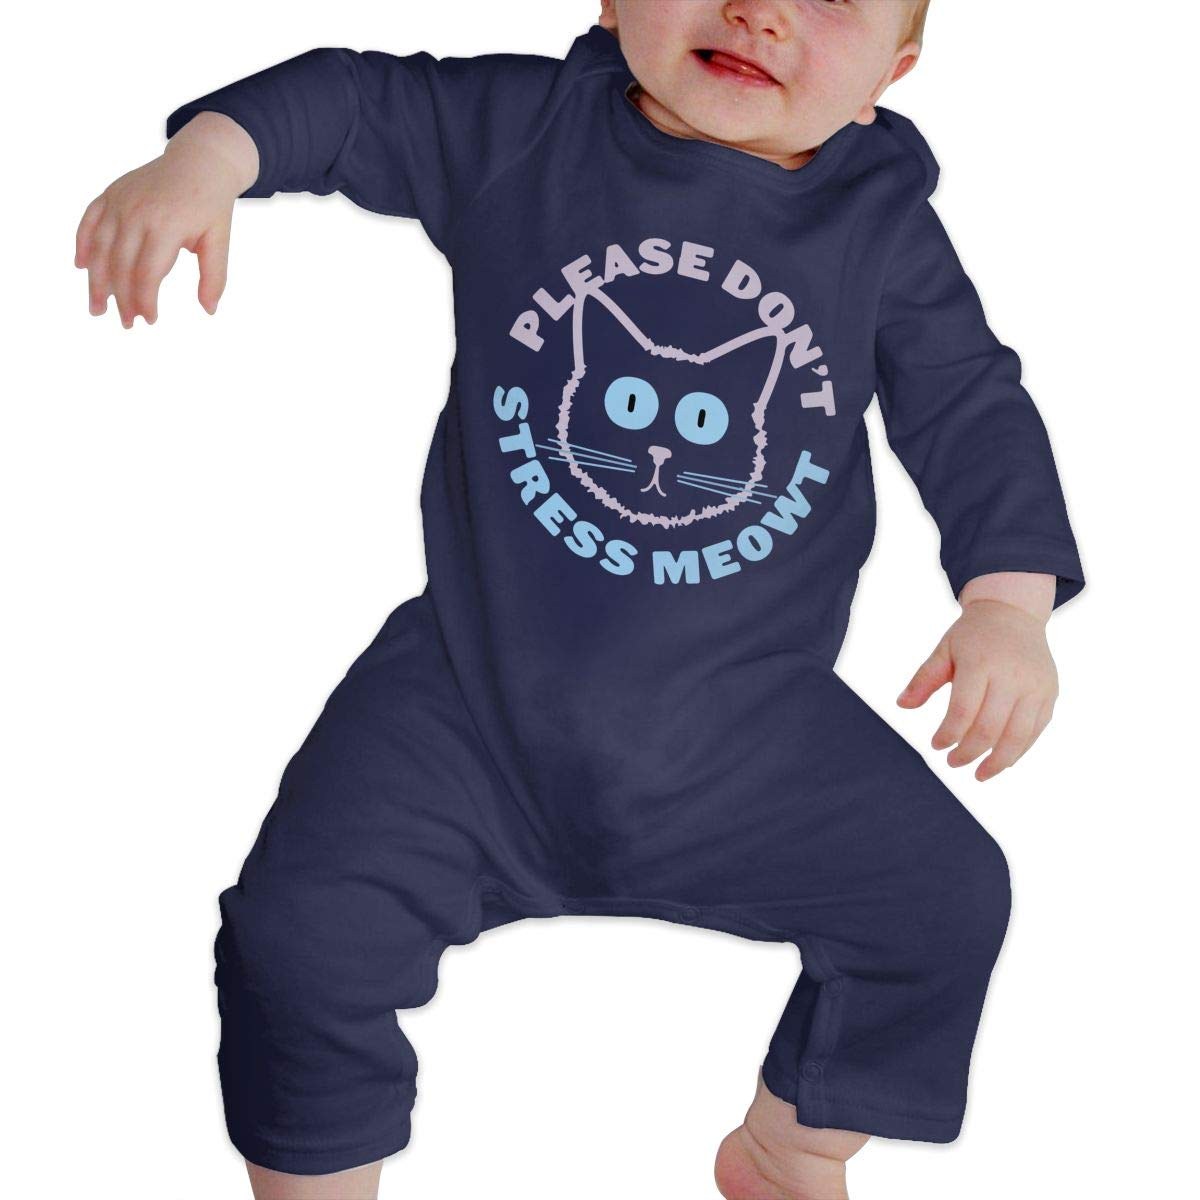 Mri-le1 Baby Girls Long Sleeve Jumpsuit Please Dont Stress Meowt Toddler Jumpsuit